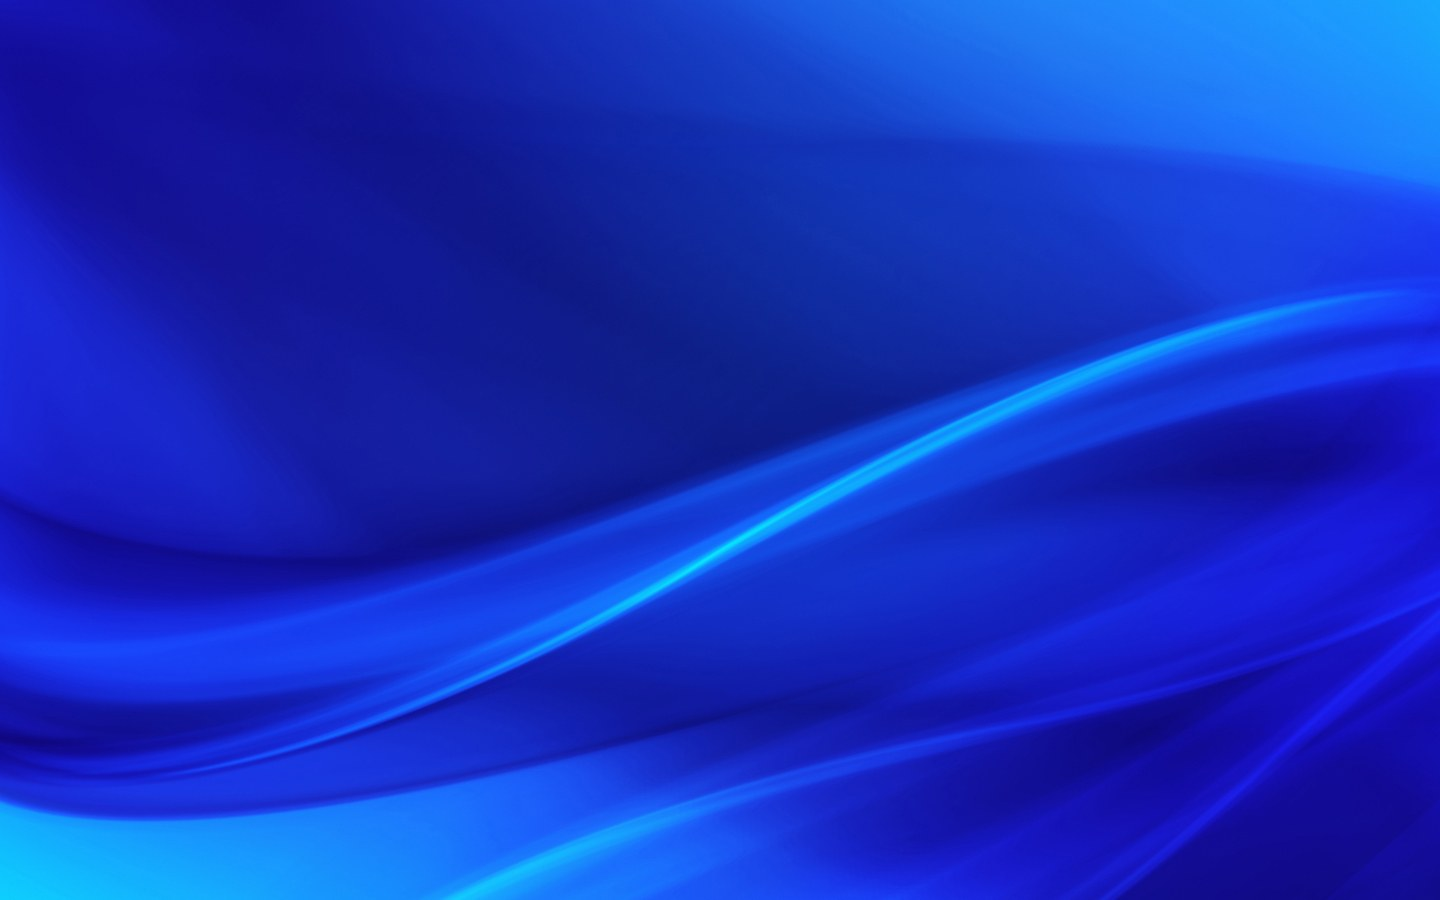 1440x900 blue abstraction - photo #7